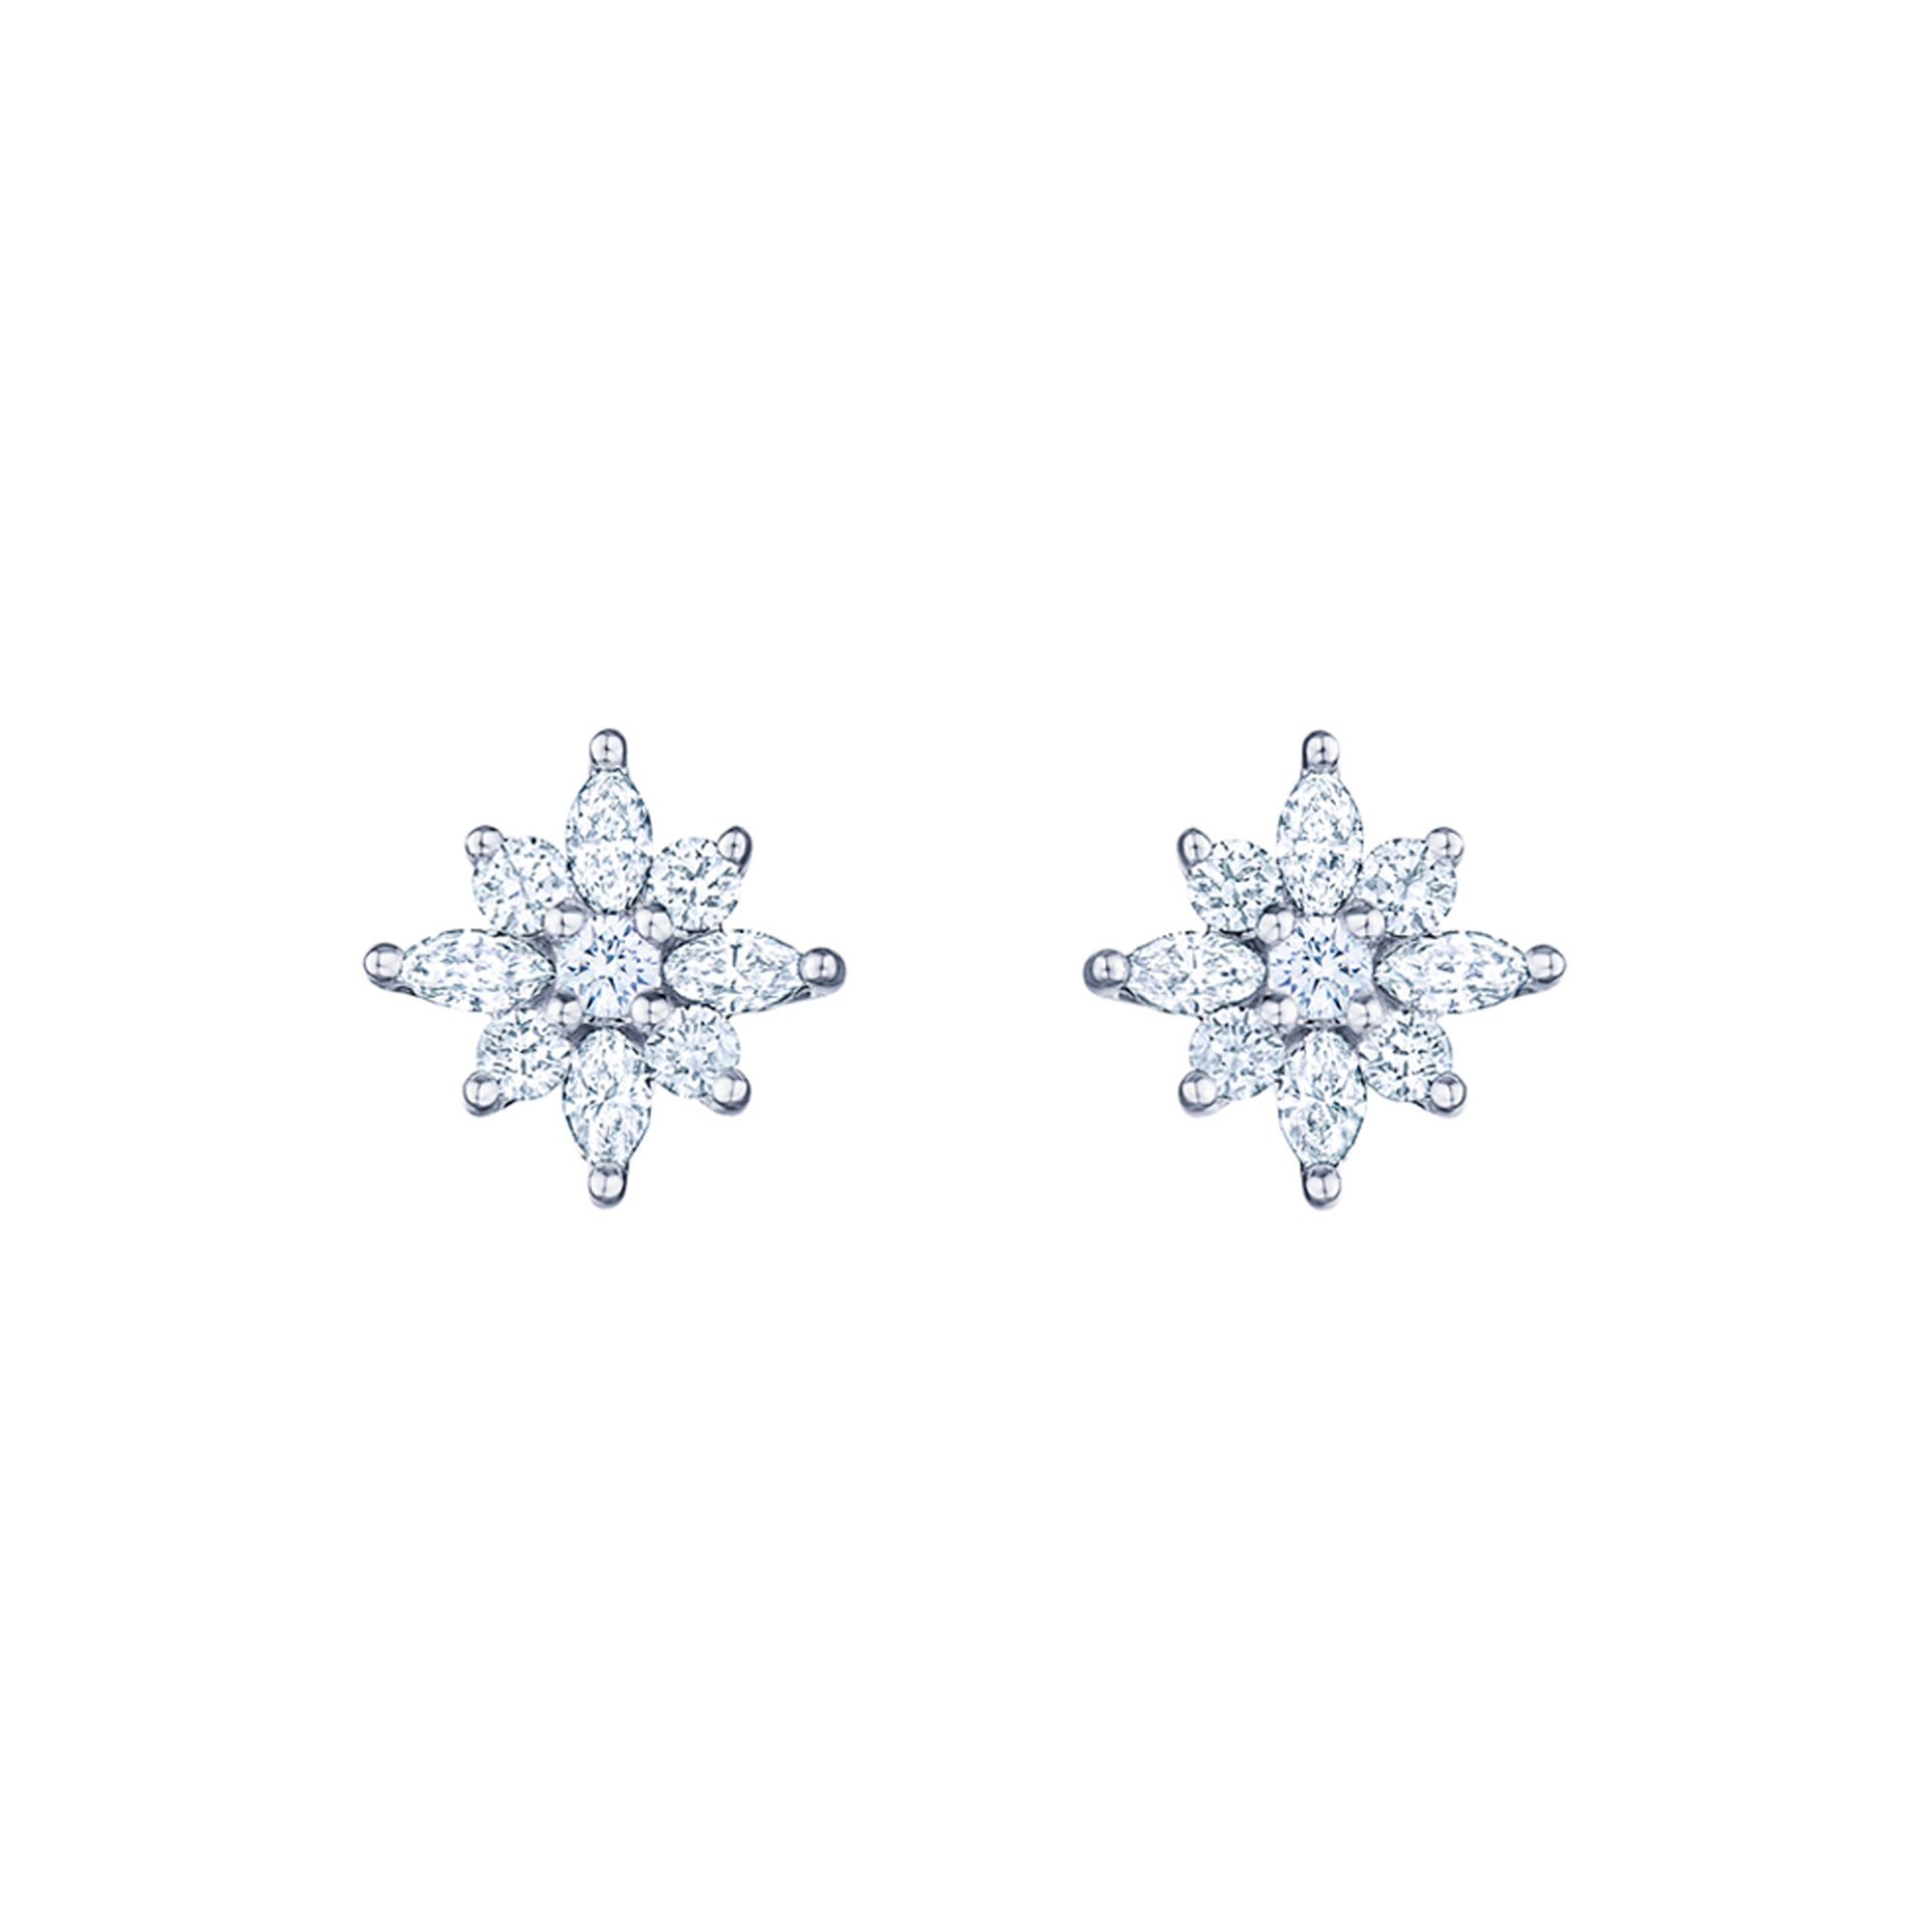 Kwiat Star Mini Stud Earrings - Earrings - Broken English Jewelry